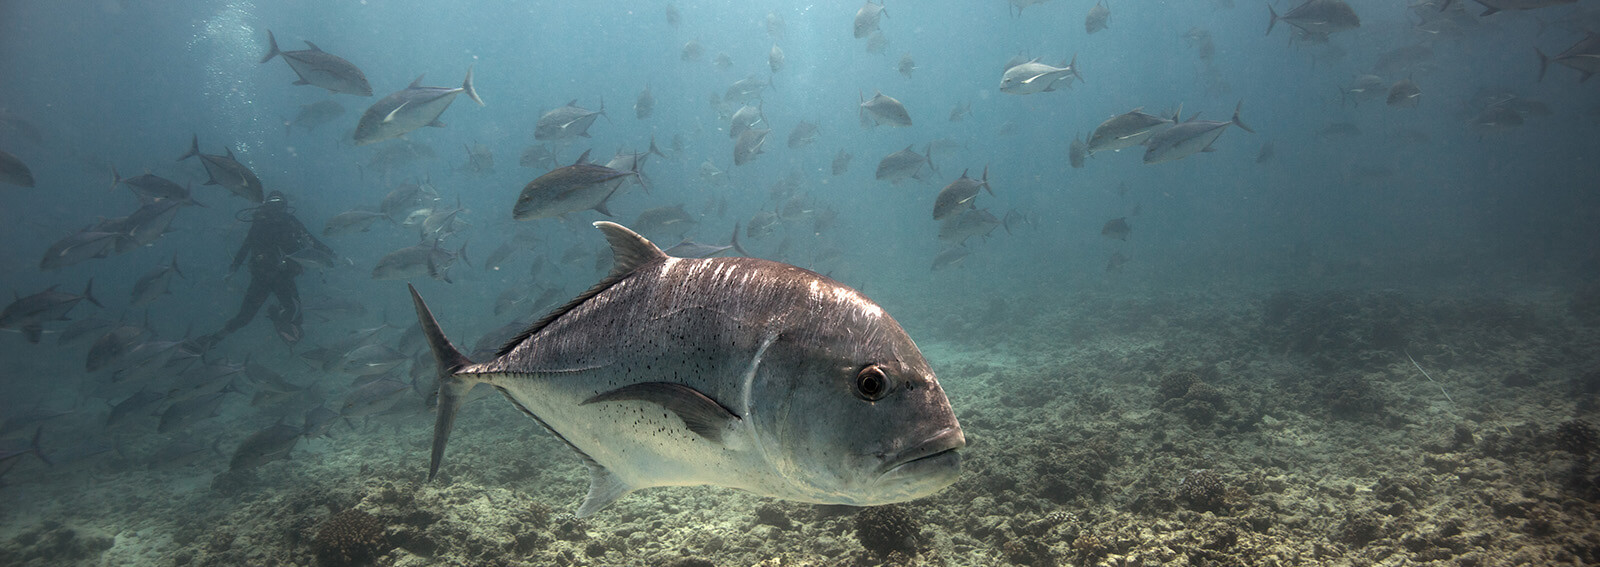 Many gray fish swim in shallow water